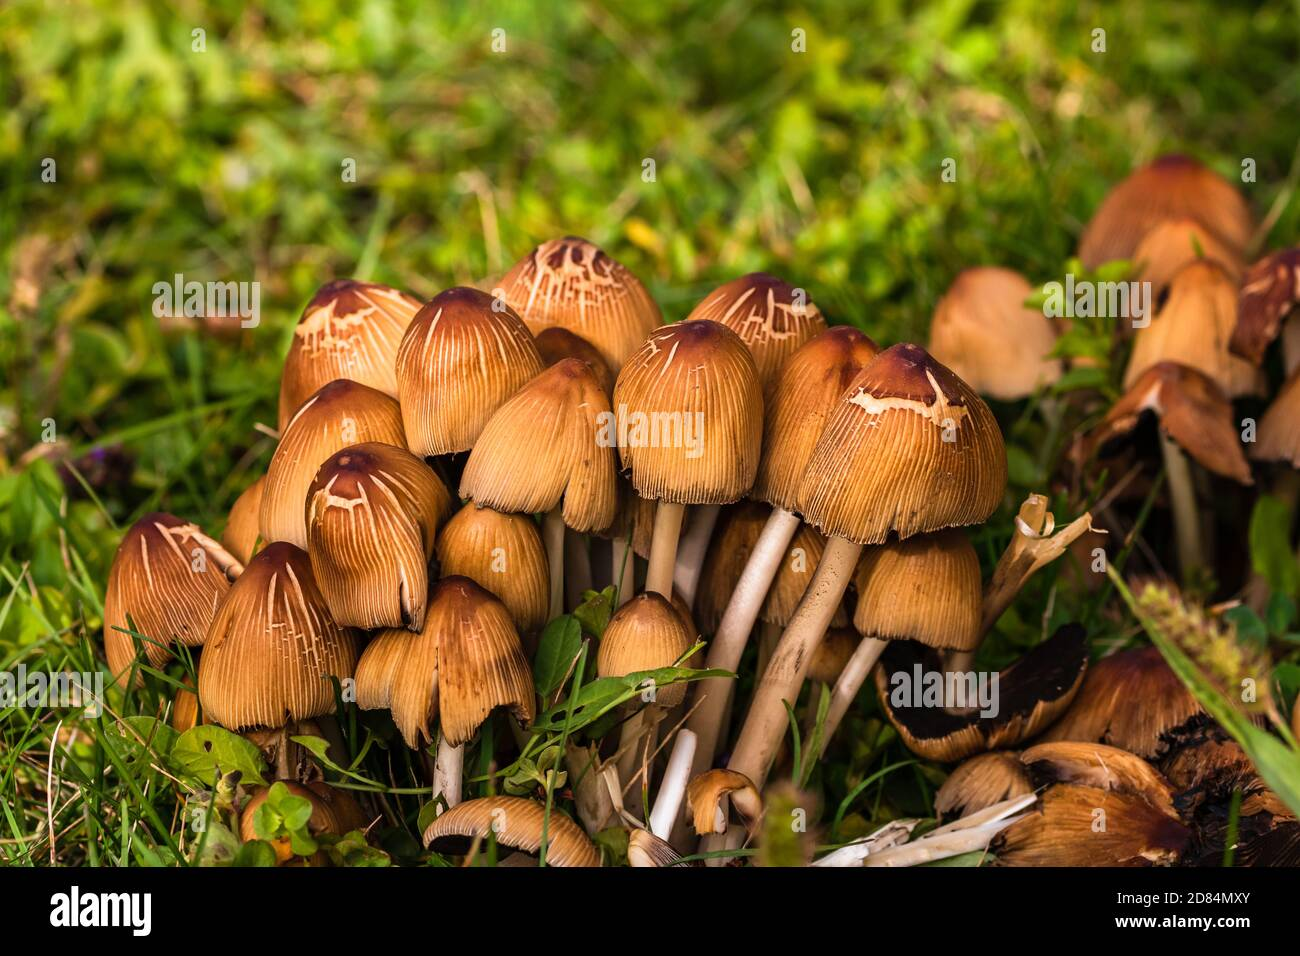 Close up of wild mushrooms growing in garden isolated. Stock Photo